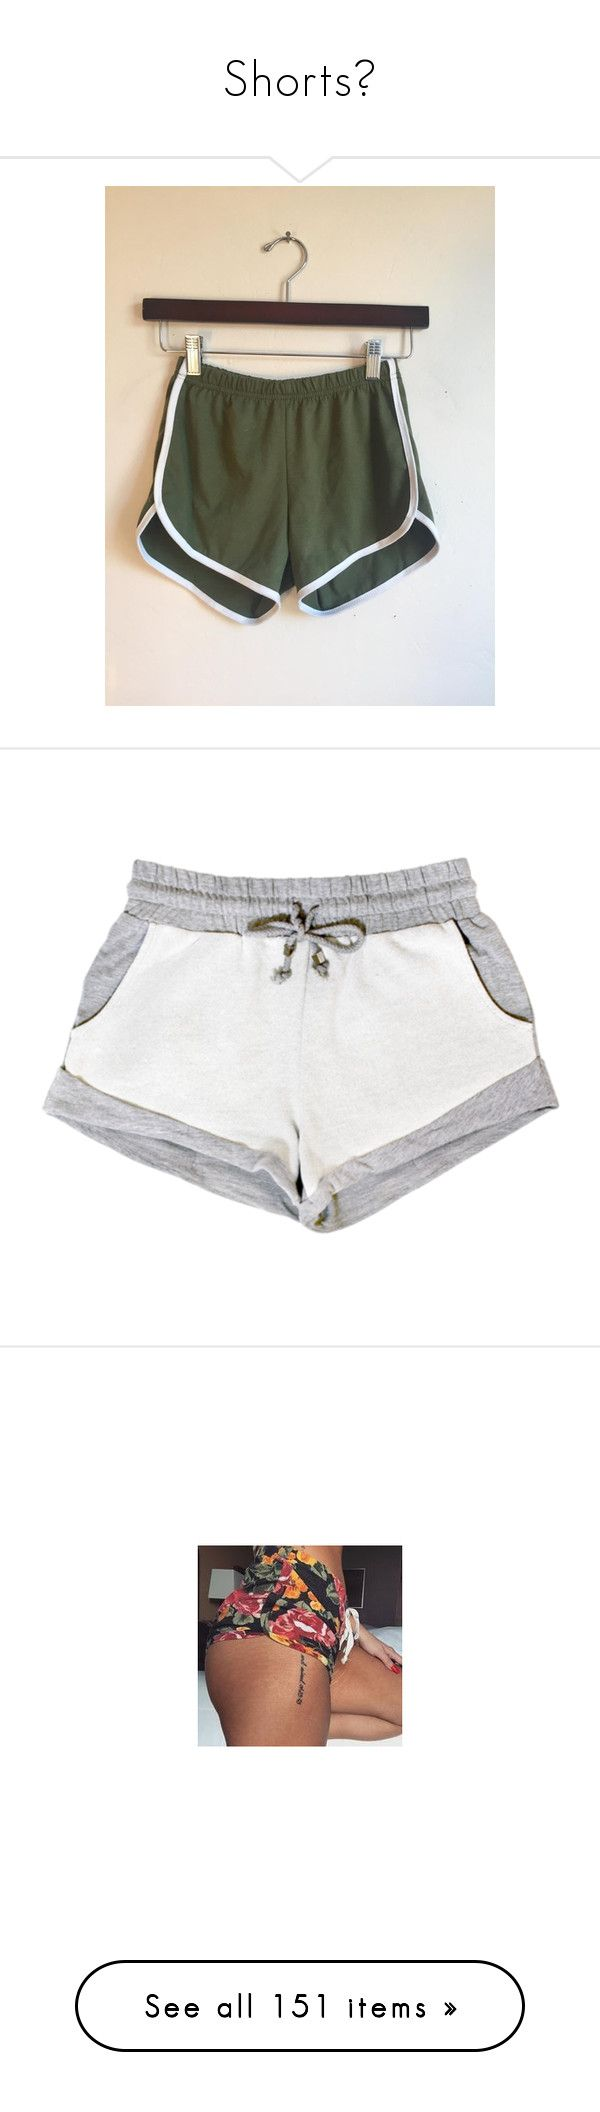 """""""Shorts🤓"""" by gamergirl247 ❤ liked on Polyvore featuring activewear, activewear shorts, black, shorts, women's clothing, bottoms, pants, shorts/skirts, red shorts and high rise shorts"""